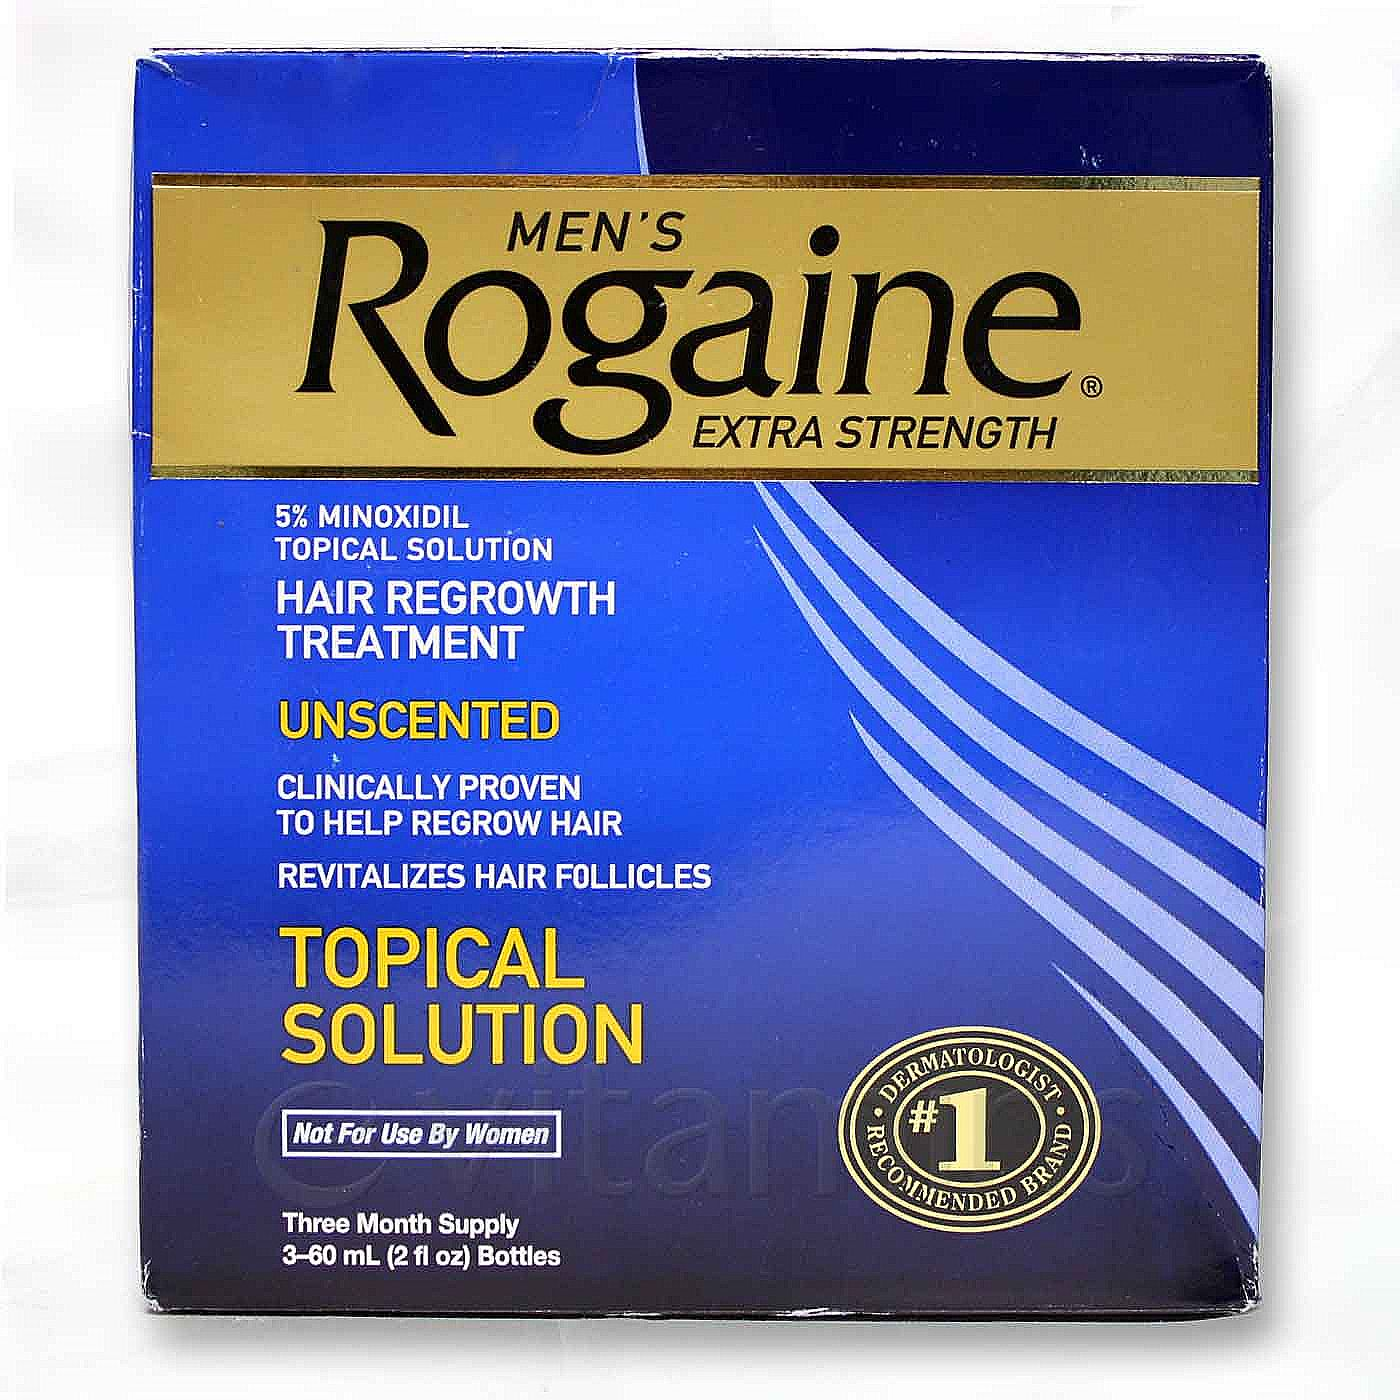 How to apply rogaine drops